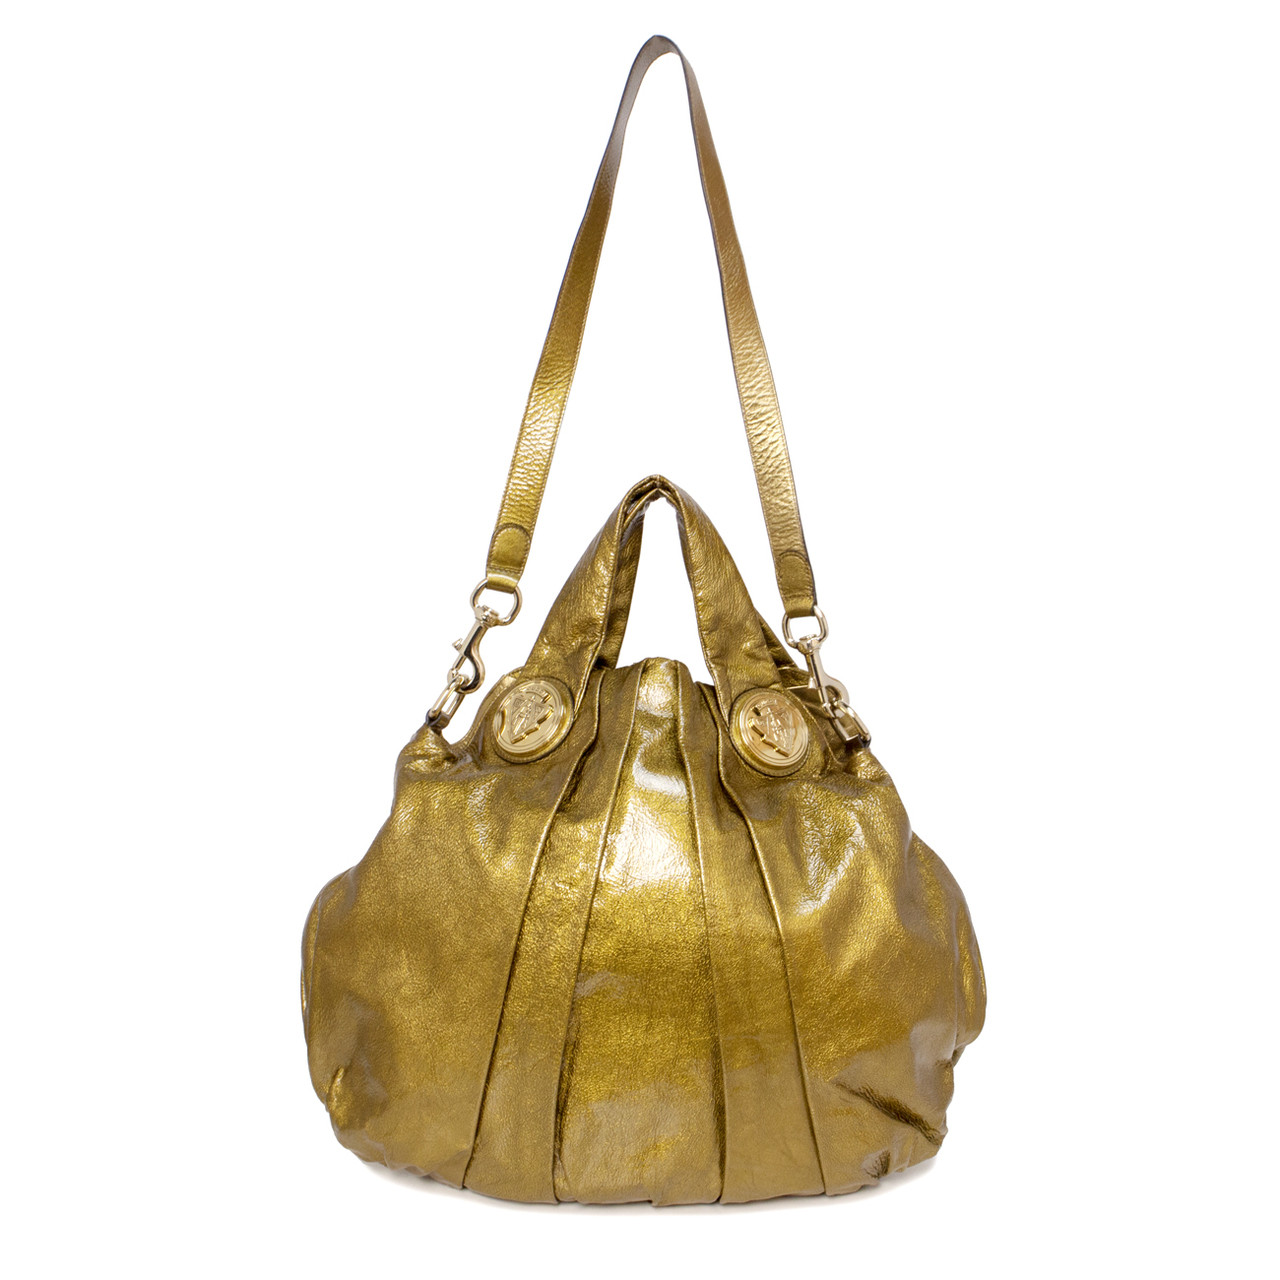 d3a8b12c986 Gucci Gold Patent Leather Hysteria Hobo Bag - modaselle